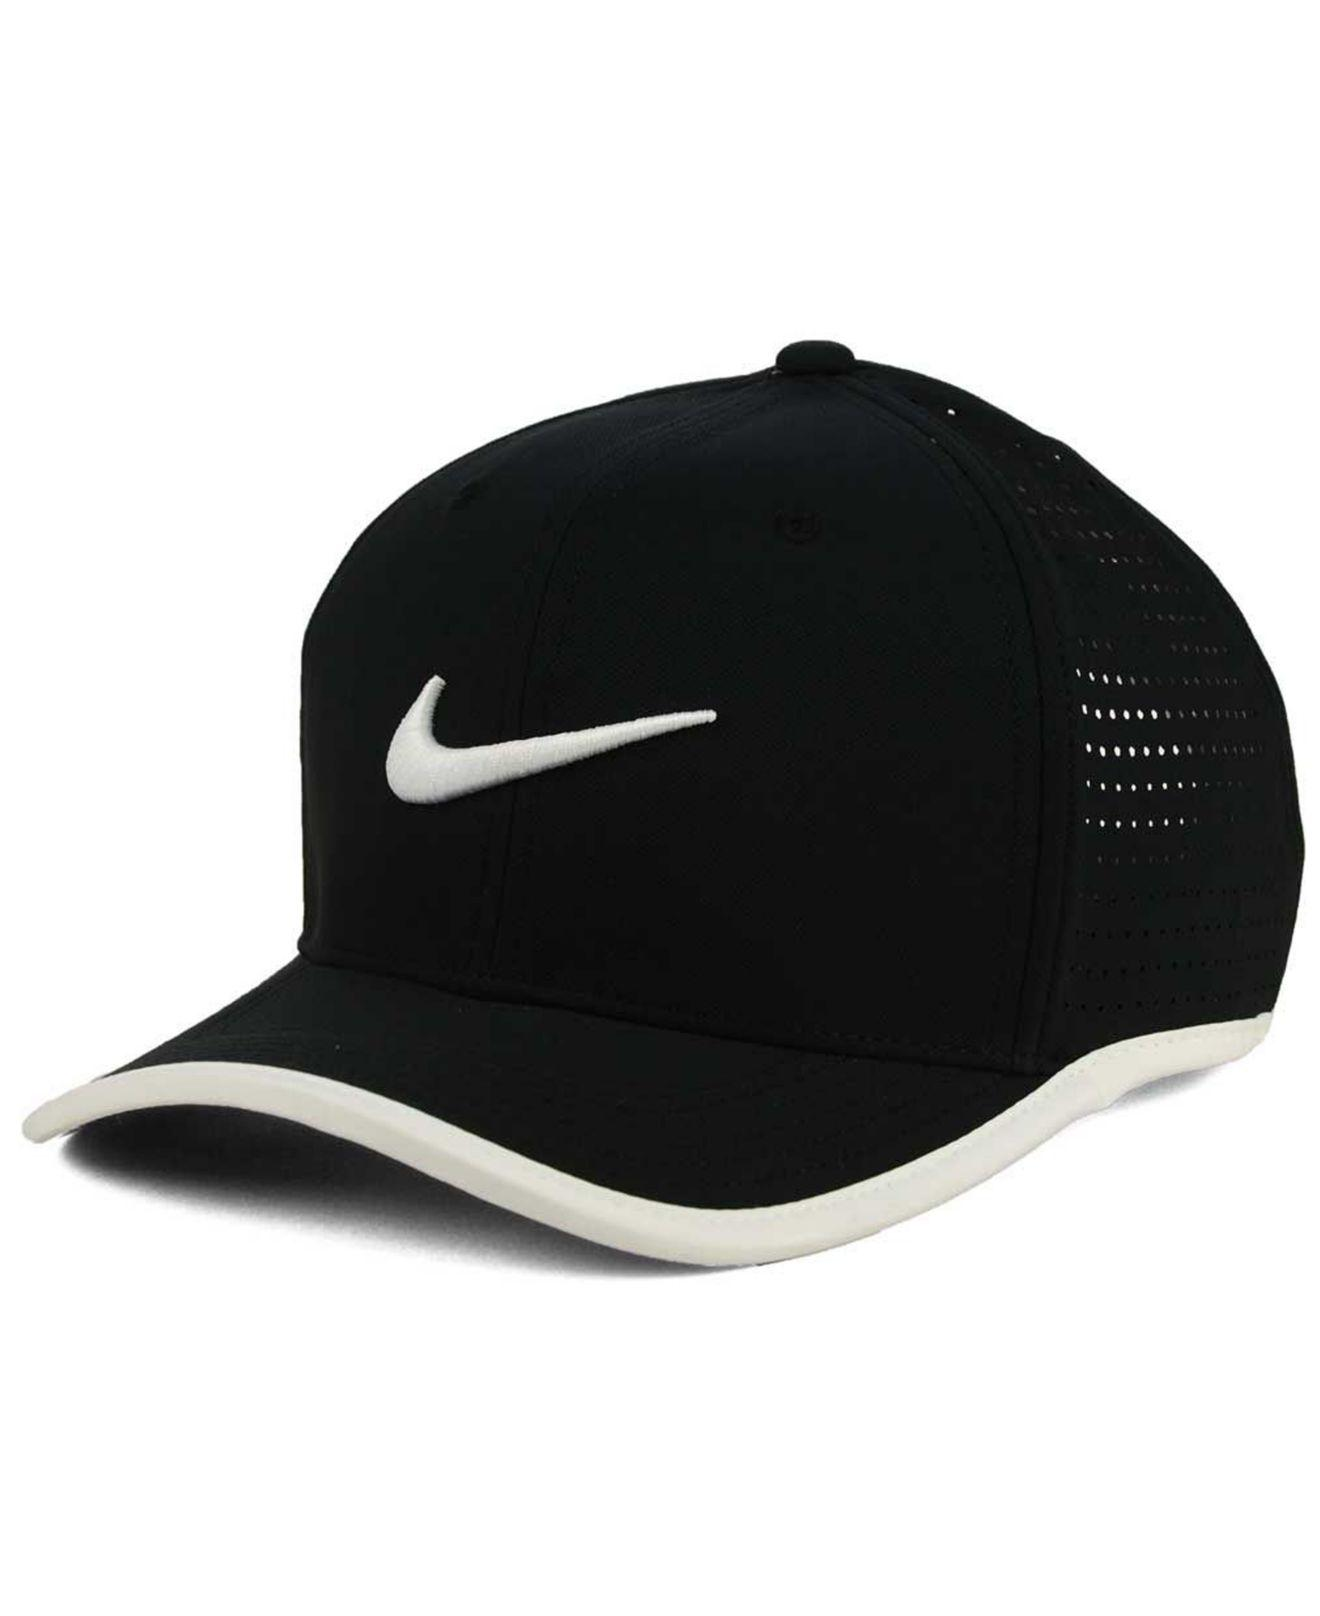 Lyst - Nike Vapor Adjustable Ii Cap in Black for Men 46f492b71b57